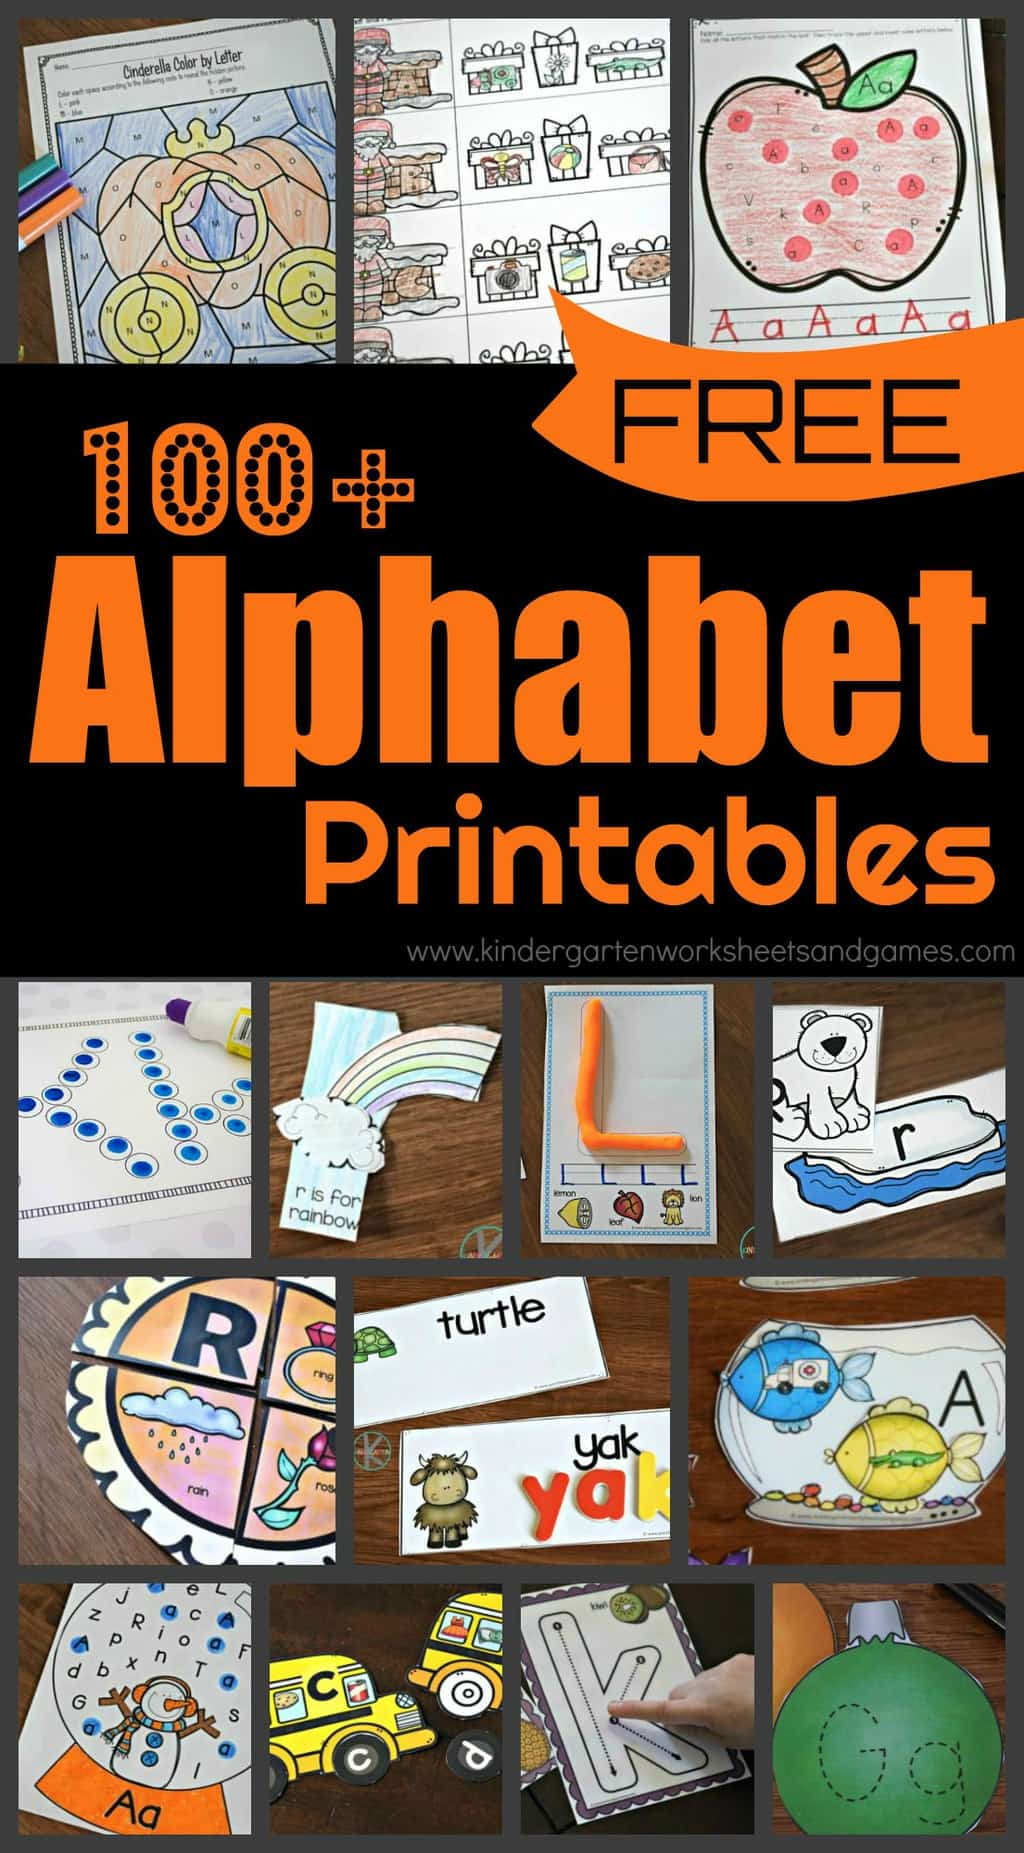 100+ Alphabet Printables - lots of fun alphabet worksheets, abc games, letter matching, alphabet activites, alphabet crafts, and more to help toddlers, preschoolers and kindergartners have fun learning their letters from A to Z. #alphabet #alphabetprintables #prek #kindergarten